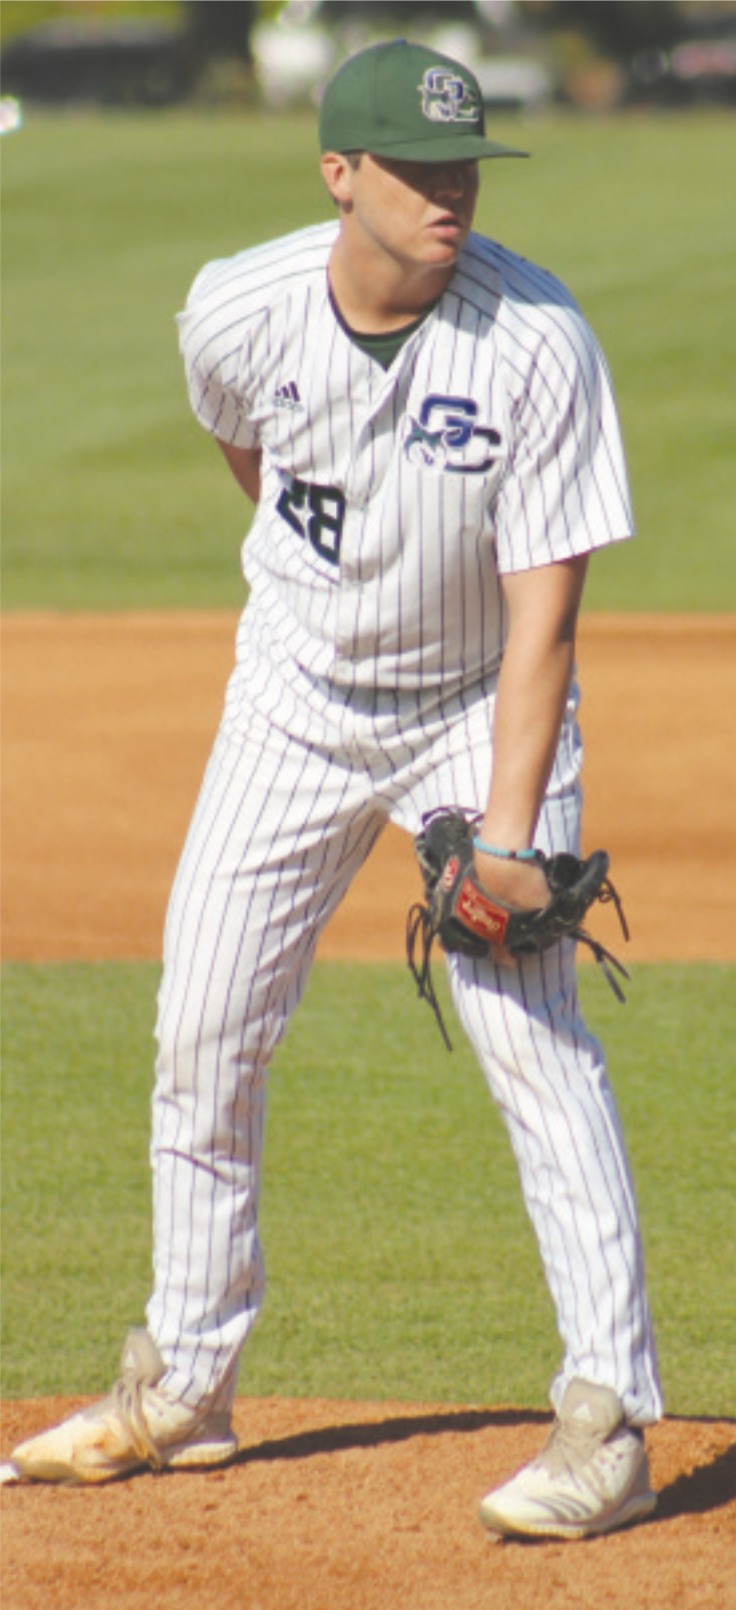 Kyle King takes the mound against Colombus State on April 26, 2019